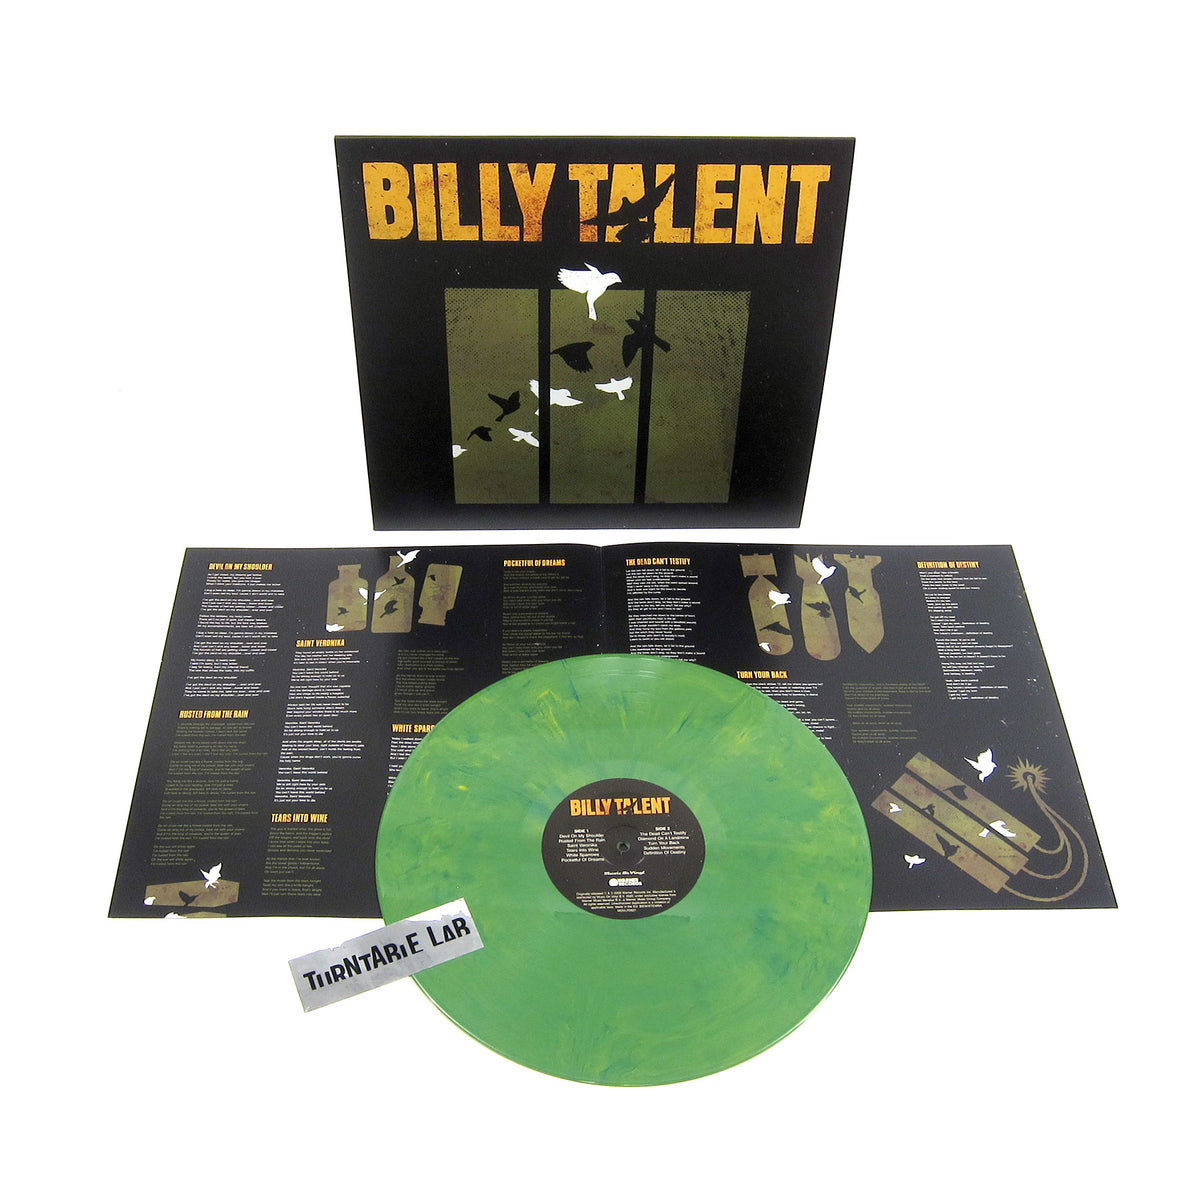 Billy Talent: Billy Talent III (Music On Vinyl 180g, Colored Vinyl) Vinyl LP